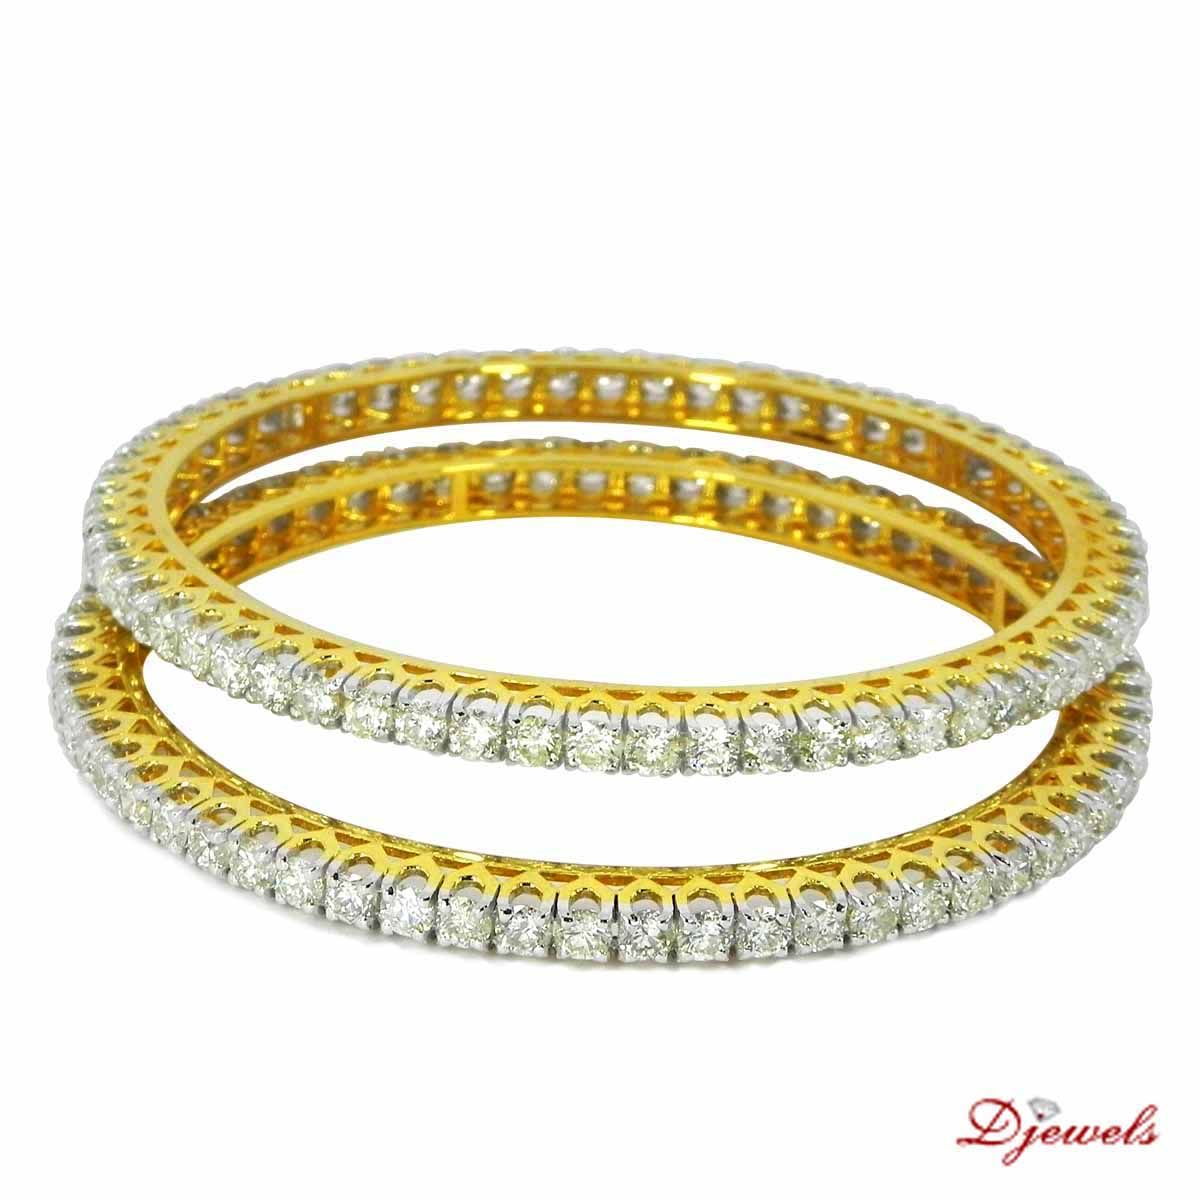 these link diamonds for of and bangle the single stacking forte bz yellow gemstones a perfect this flex are diamond is bracelet part jewelry pav designers by new lightweight collection broome bangles fine